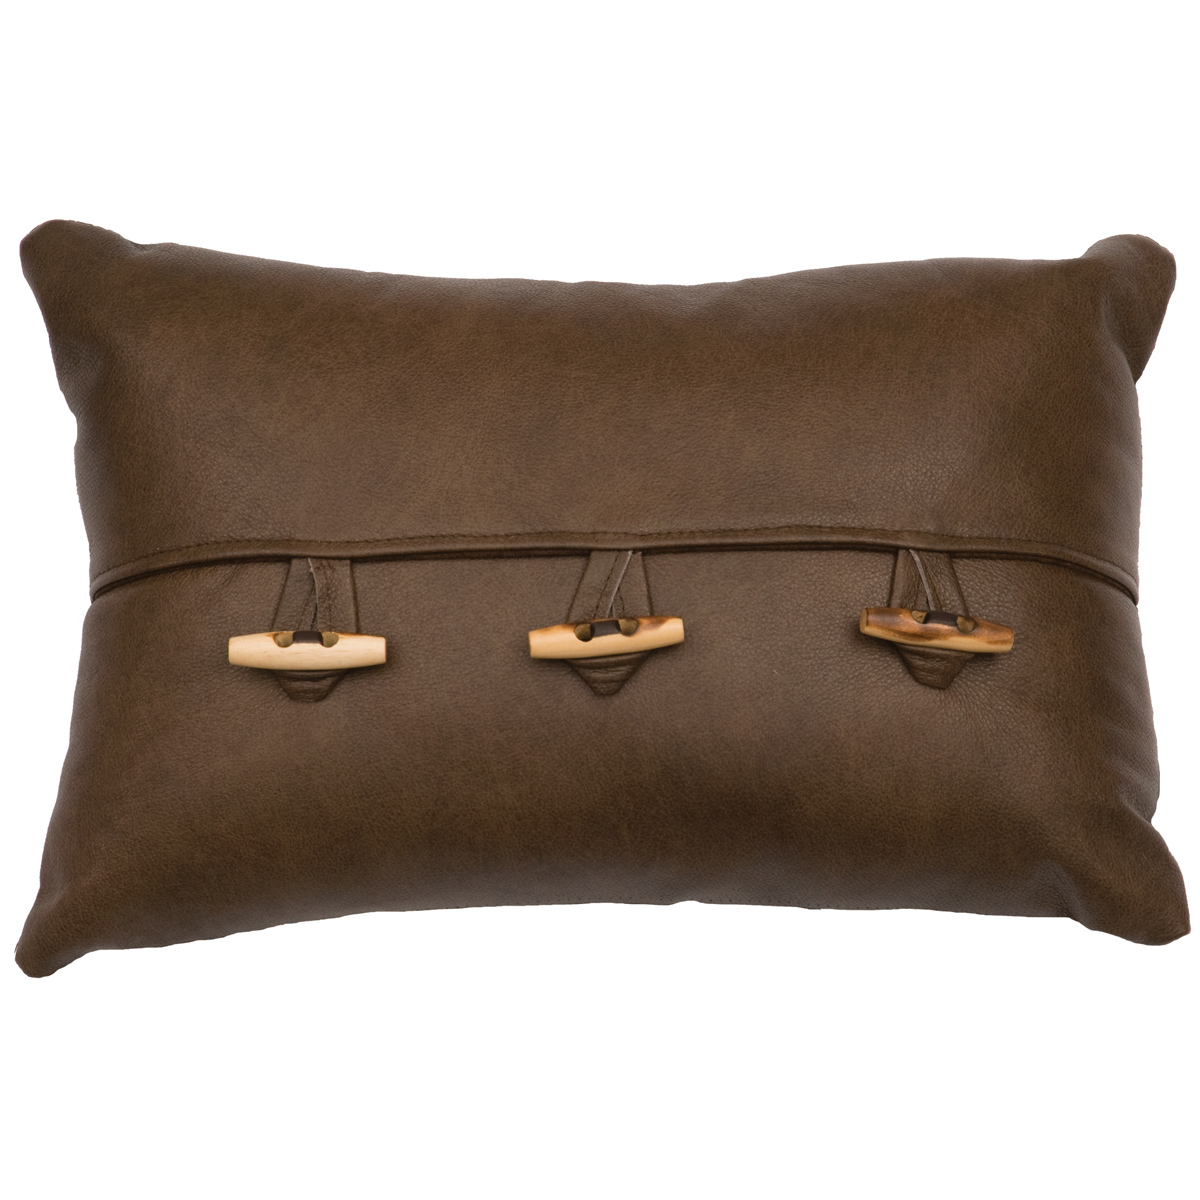 Caribou Leather Flap Pillow with Toggle Buttons